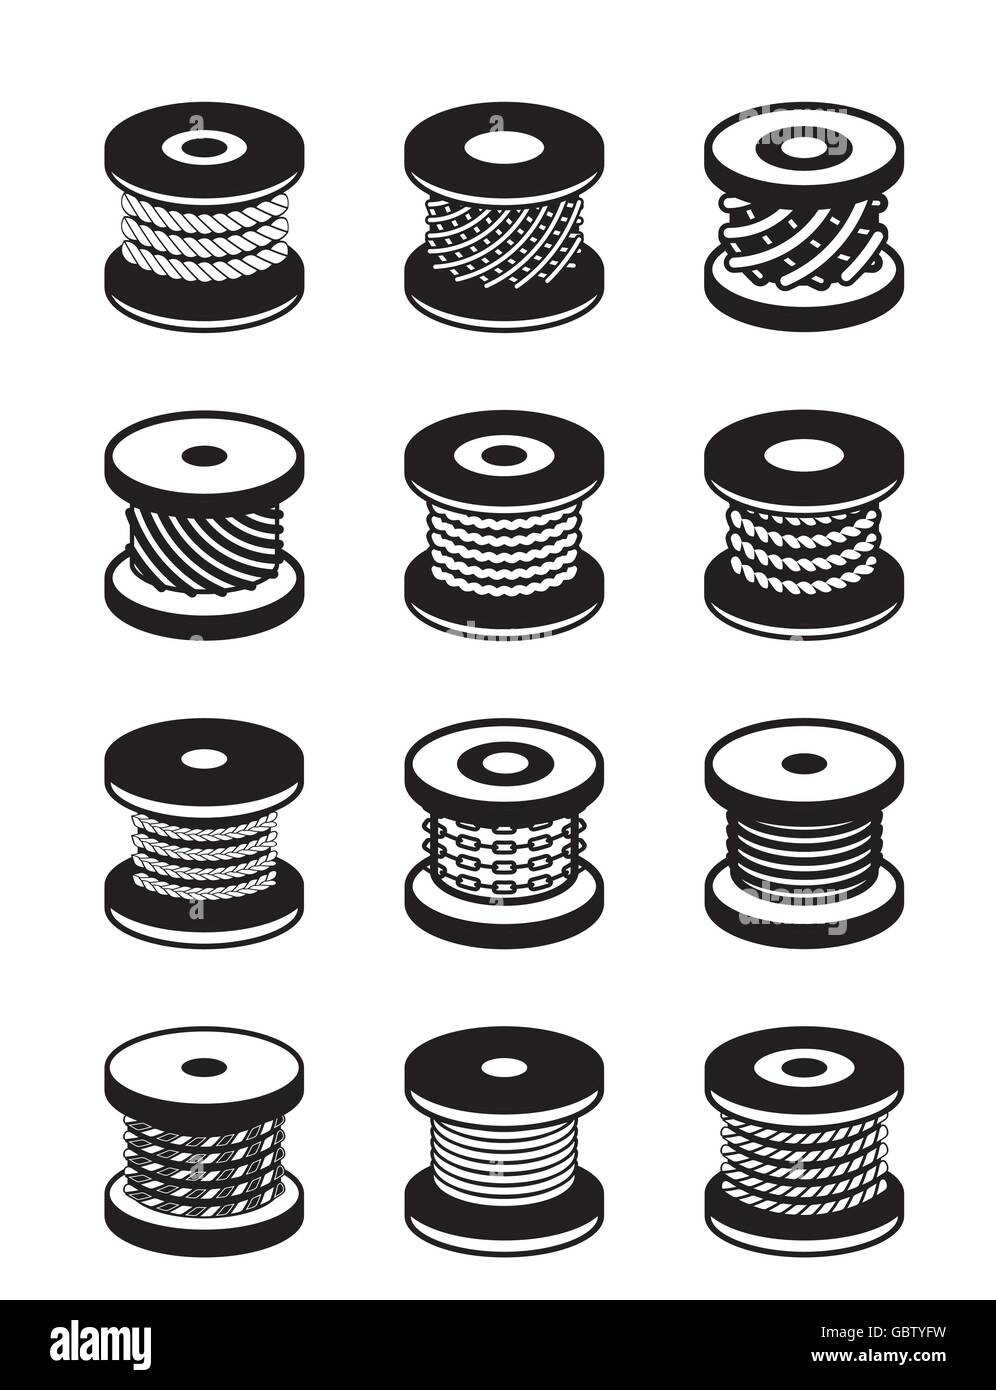 Wire Reel Stock Vector Images - Alamy